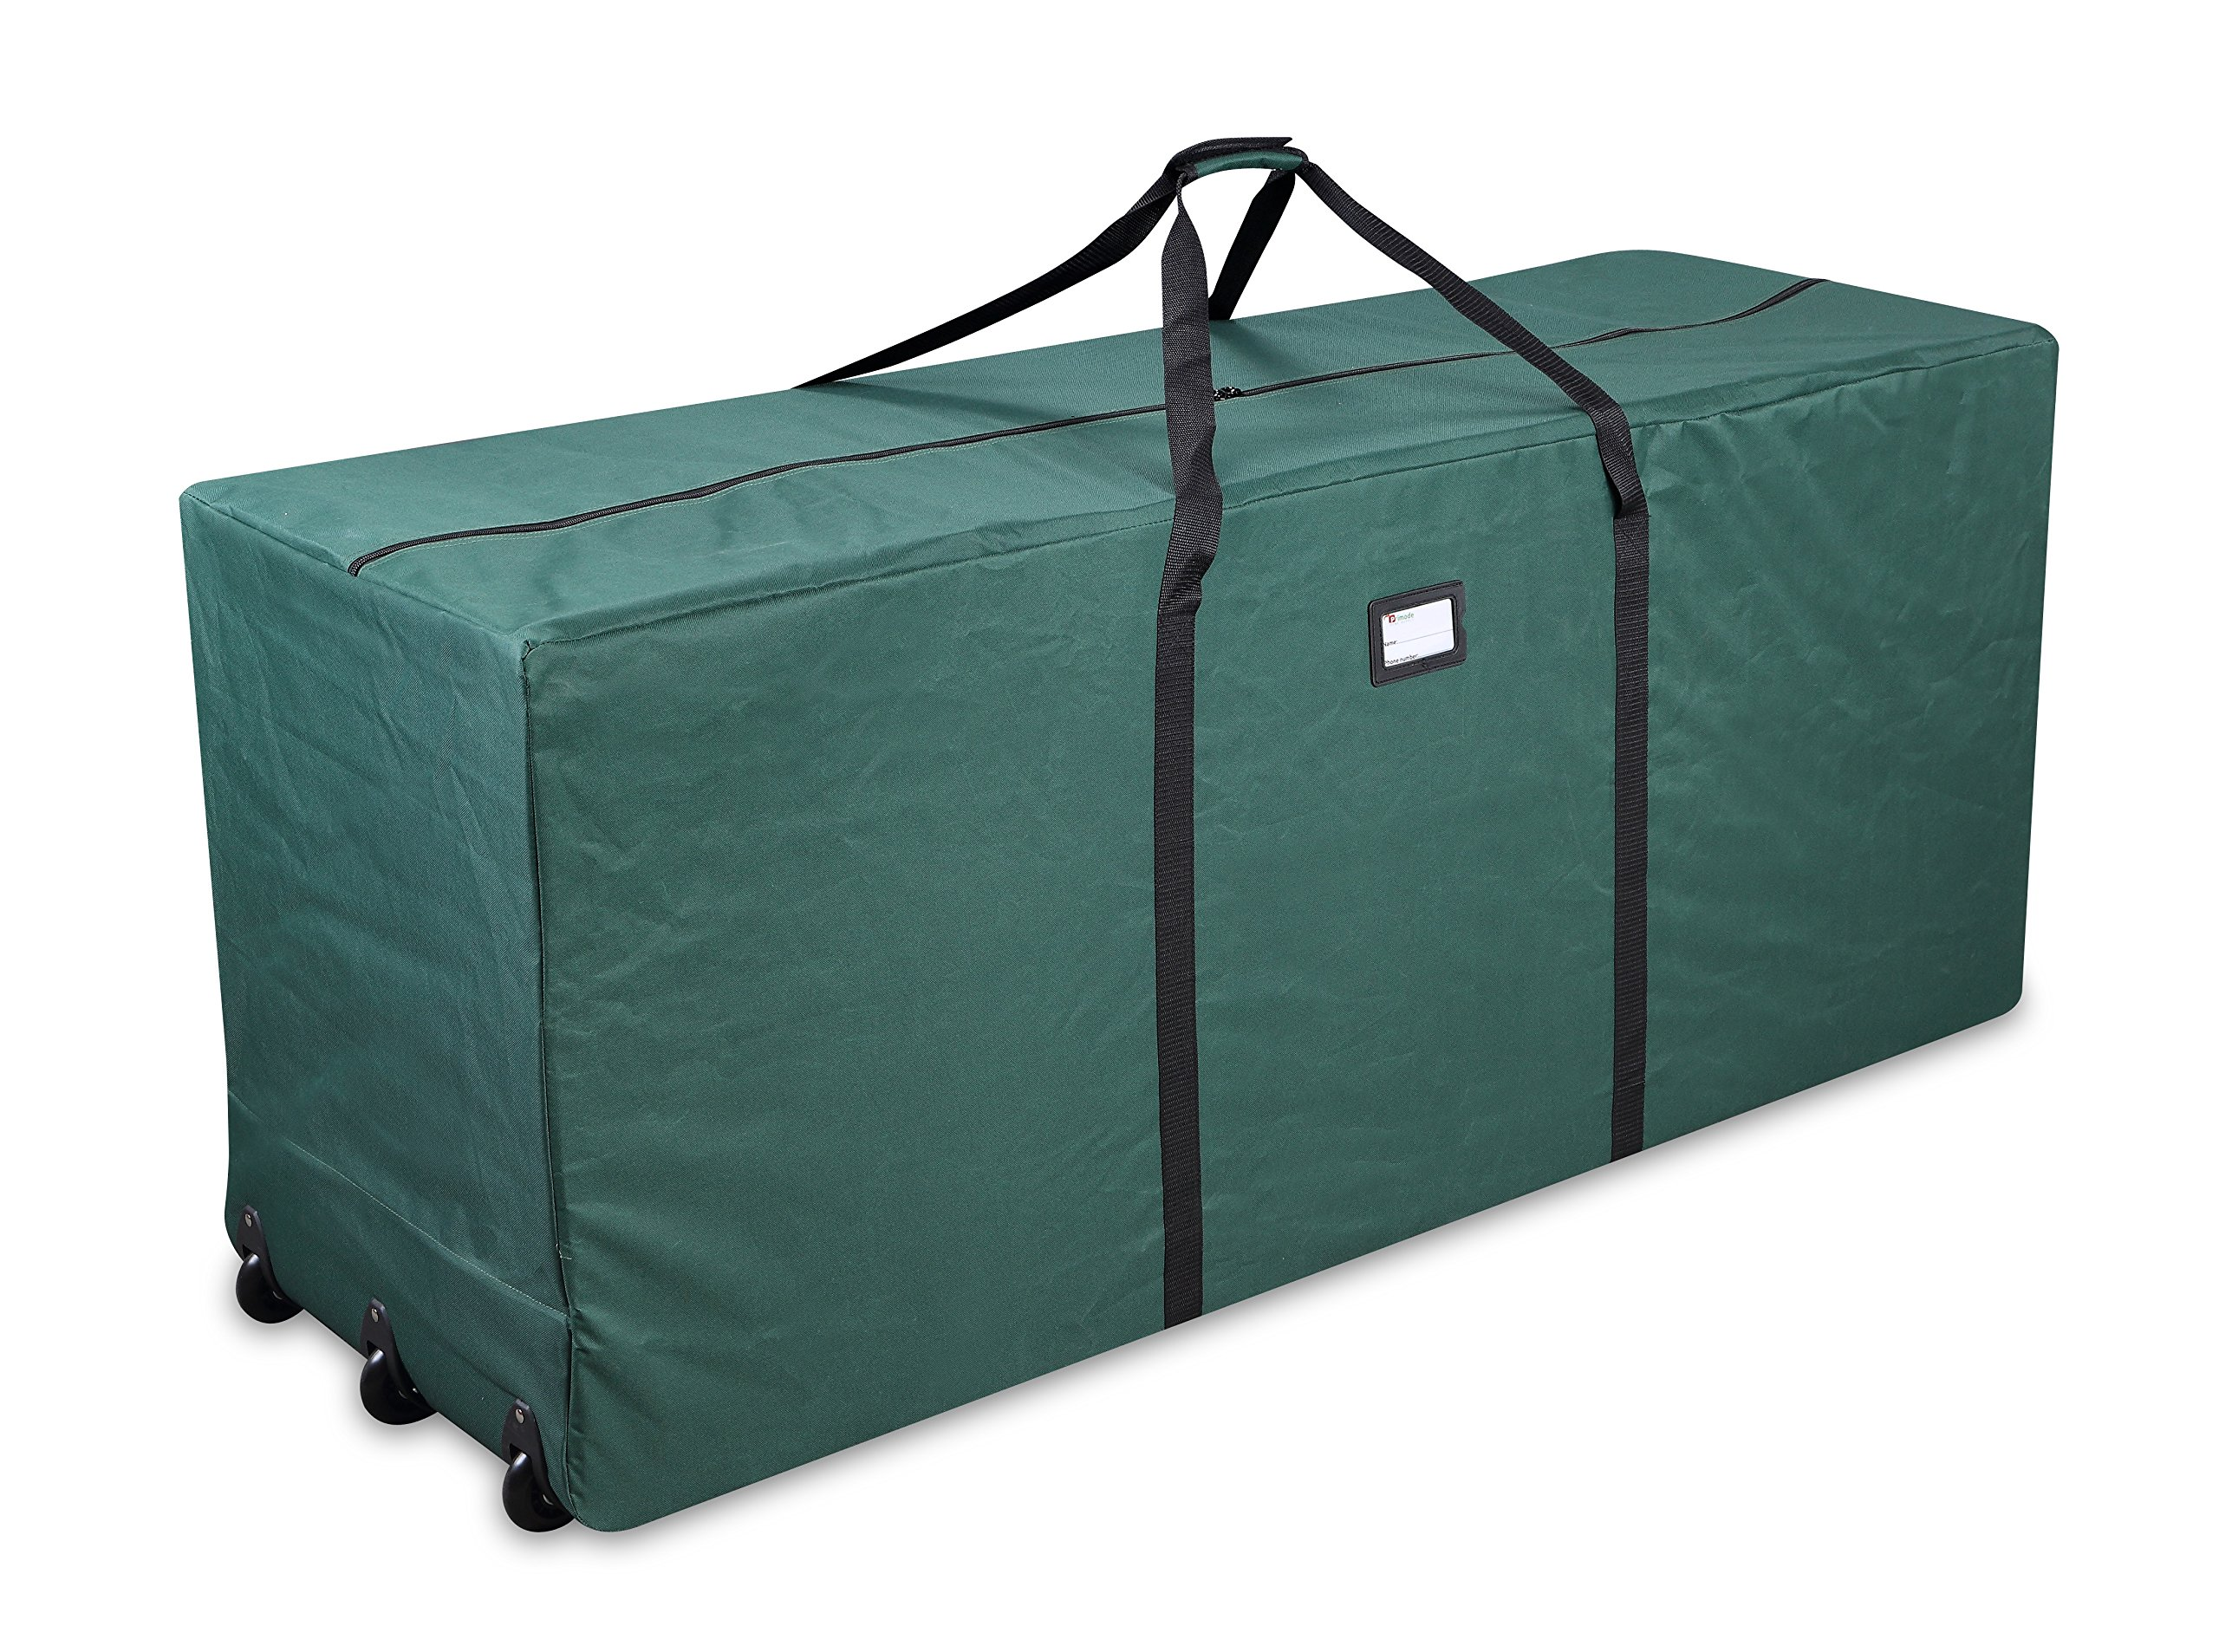 Primode Holiday Rolling Tree Storage Bag, Extra Large Heavy Duty Storage Container, 25'' Height X 20'' Wide X 60'' Long With Wheels And Handles (Green)